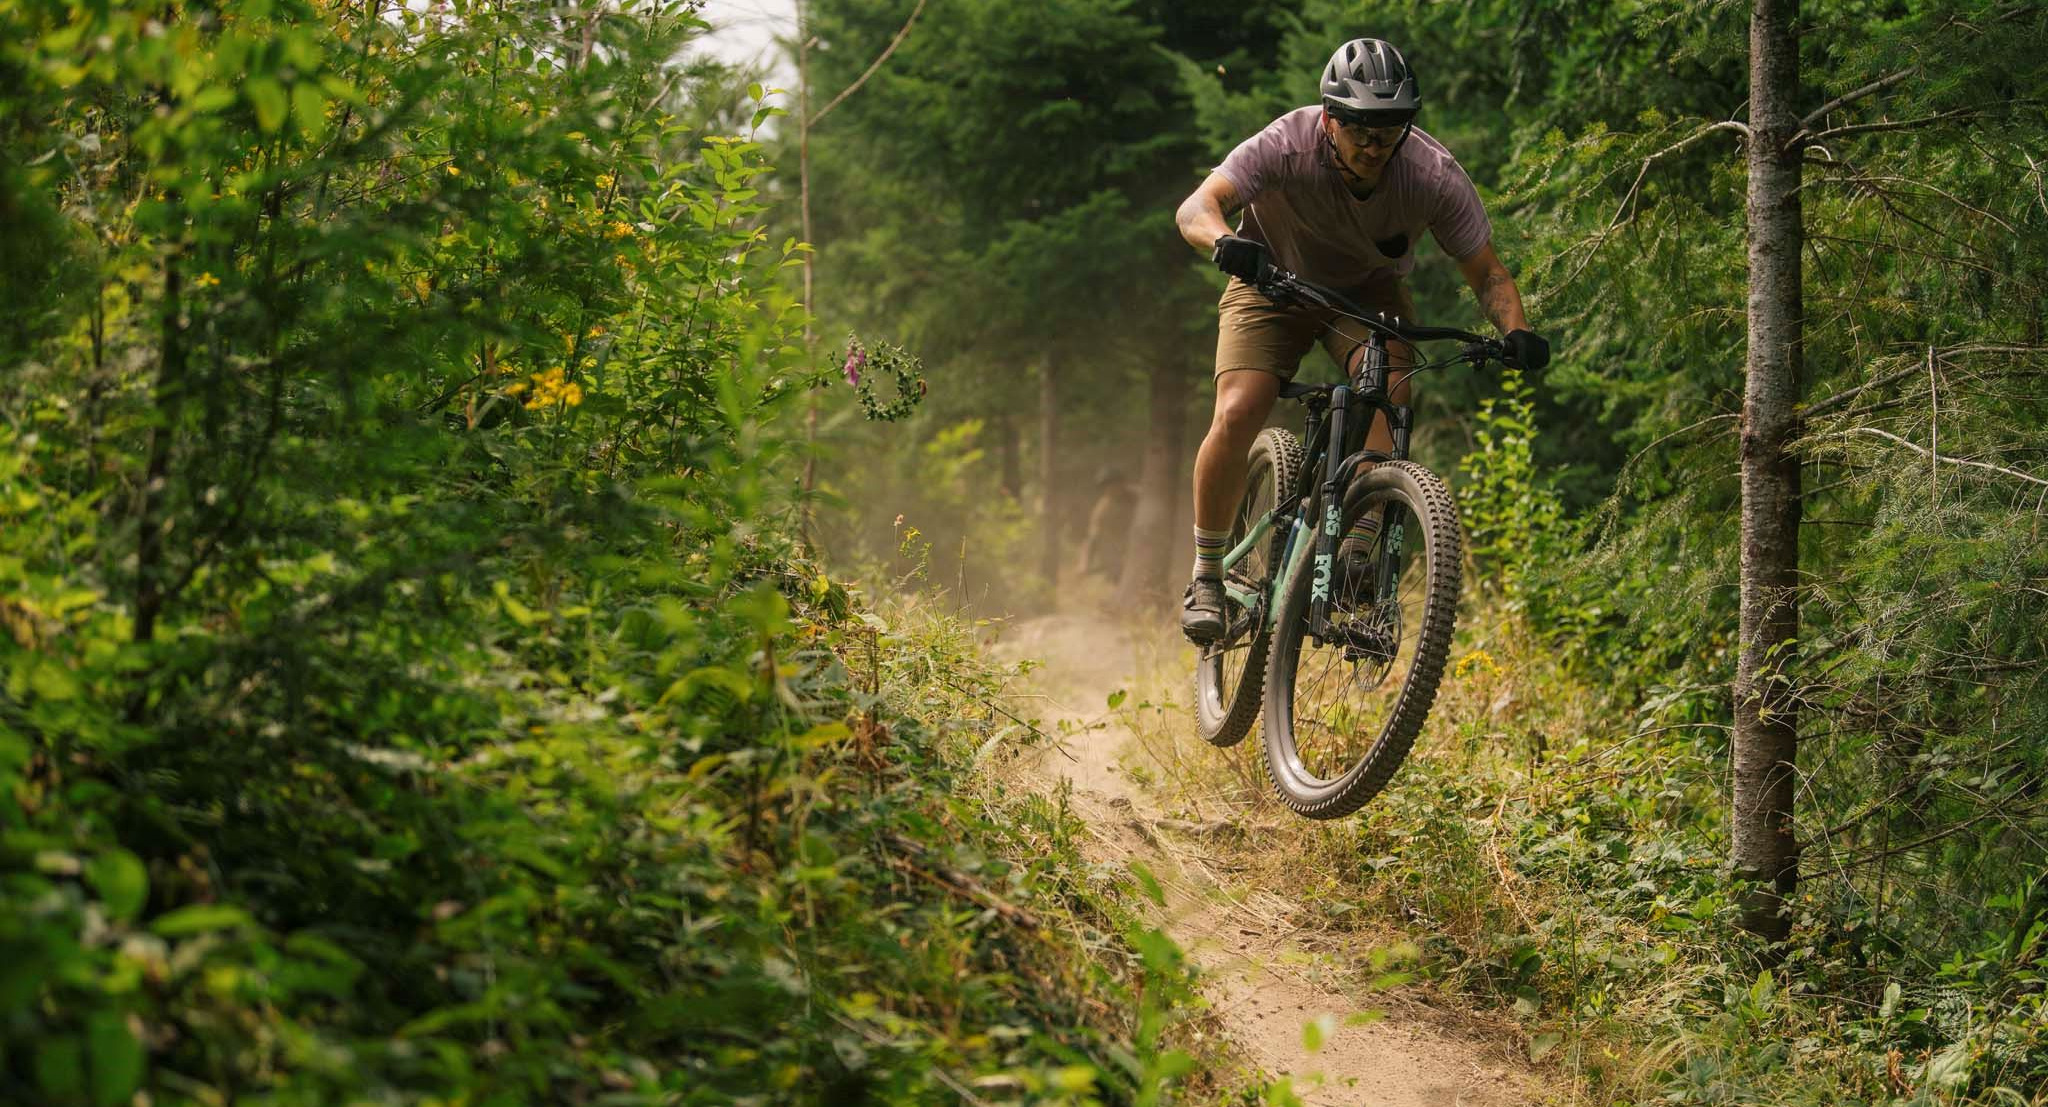 specialized mountain bike rider on trail